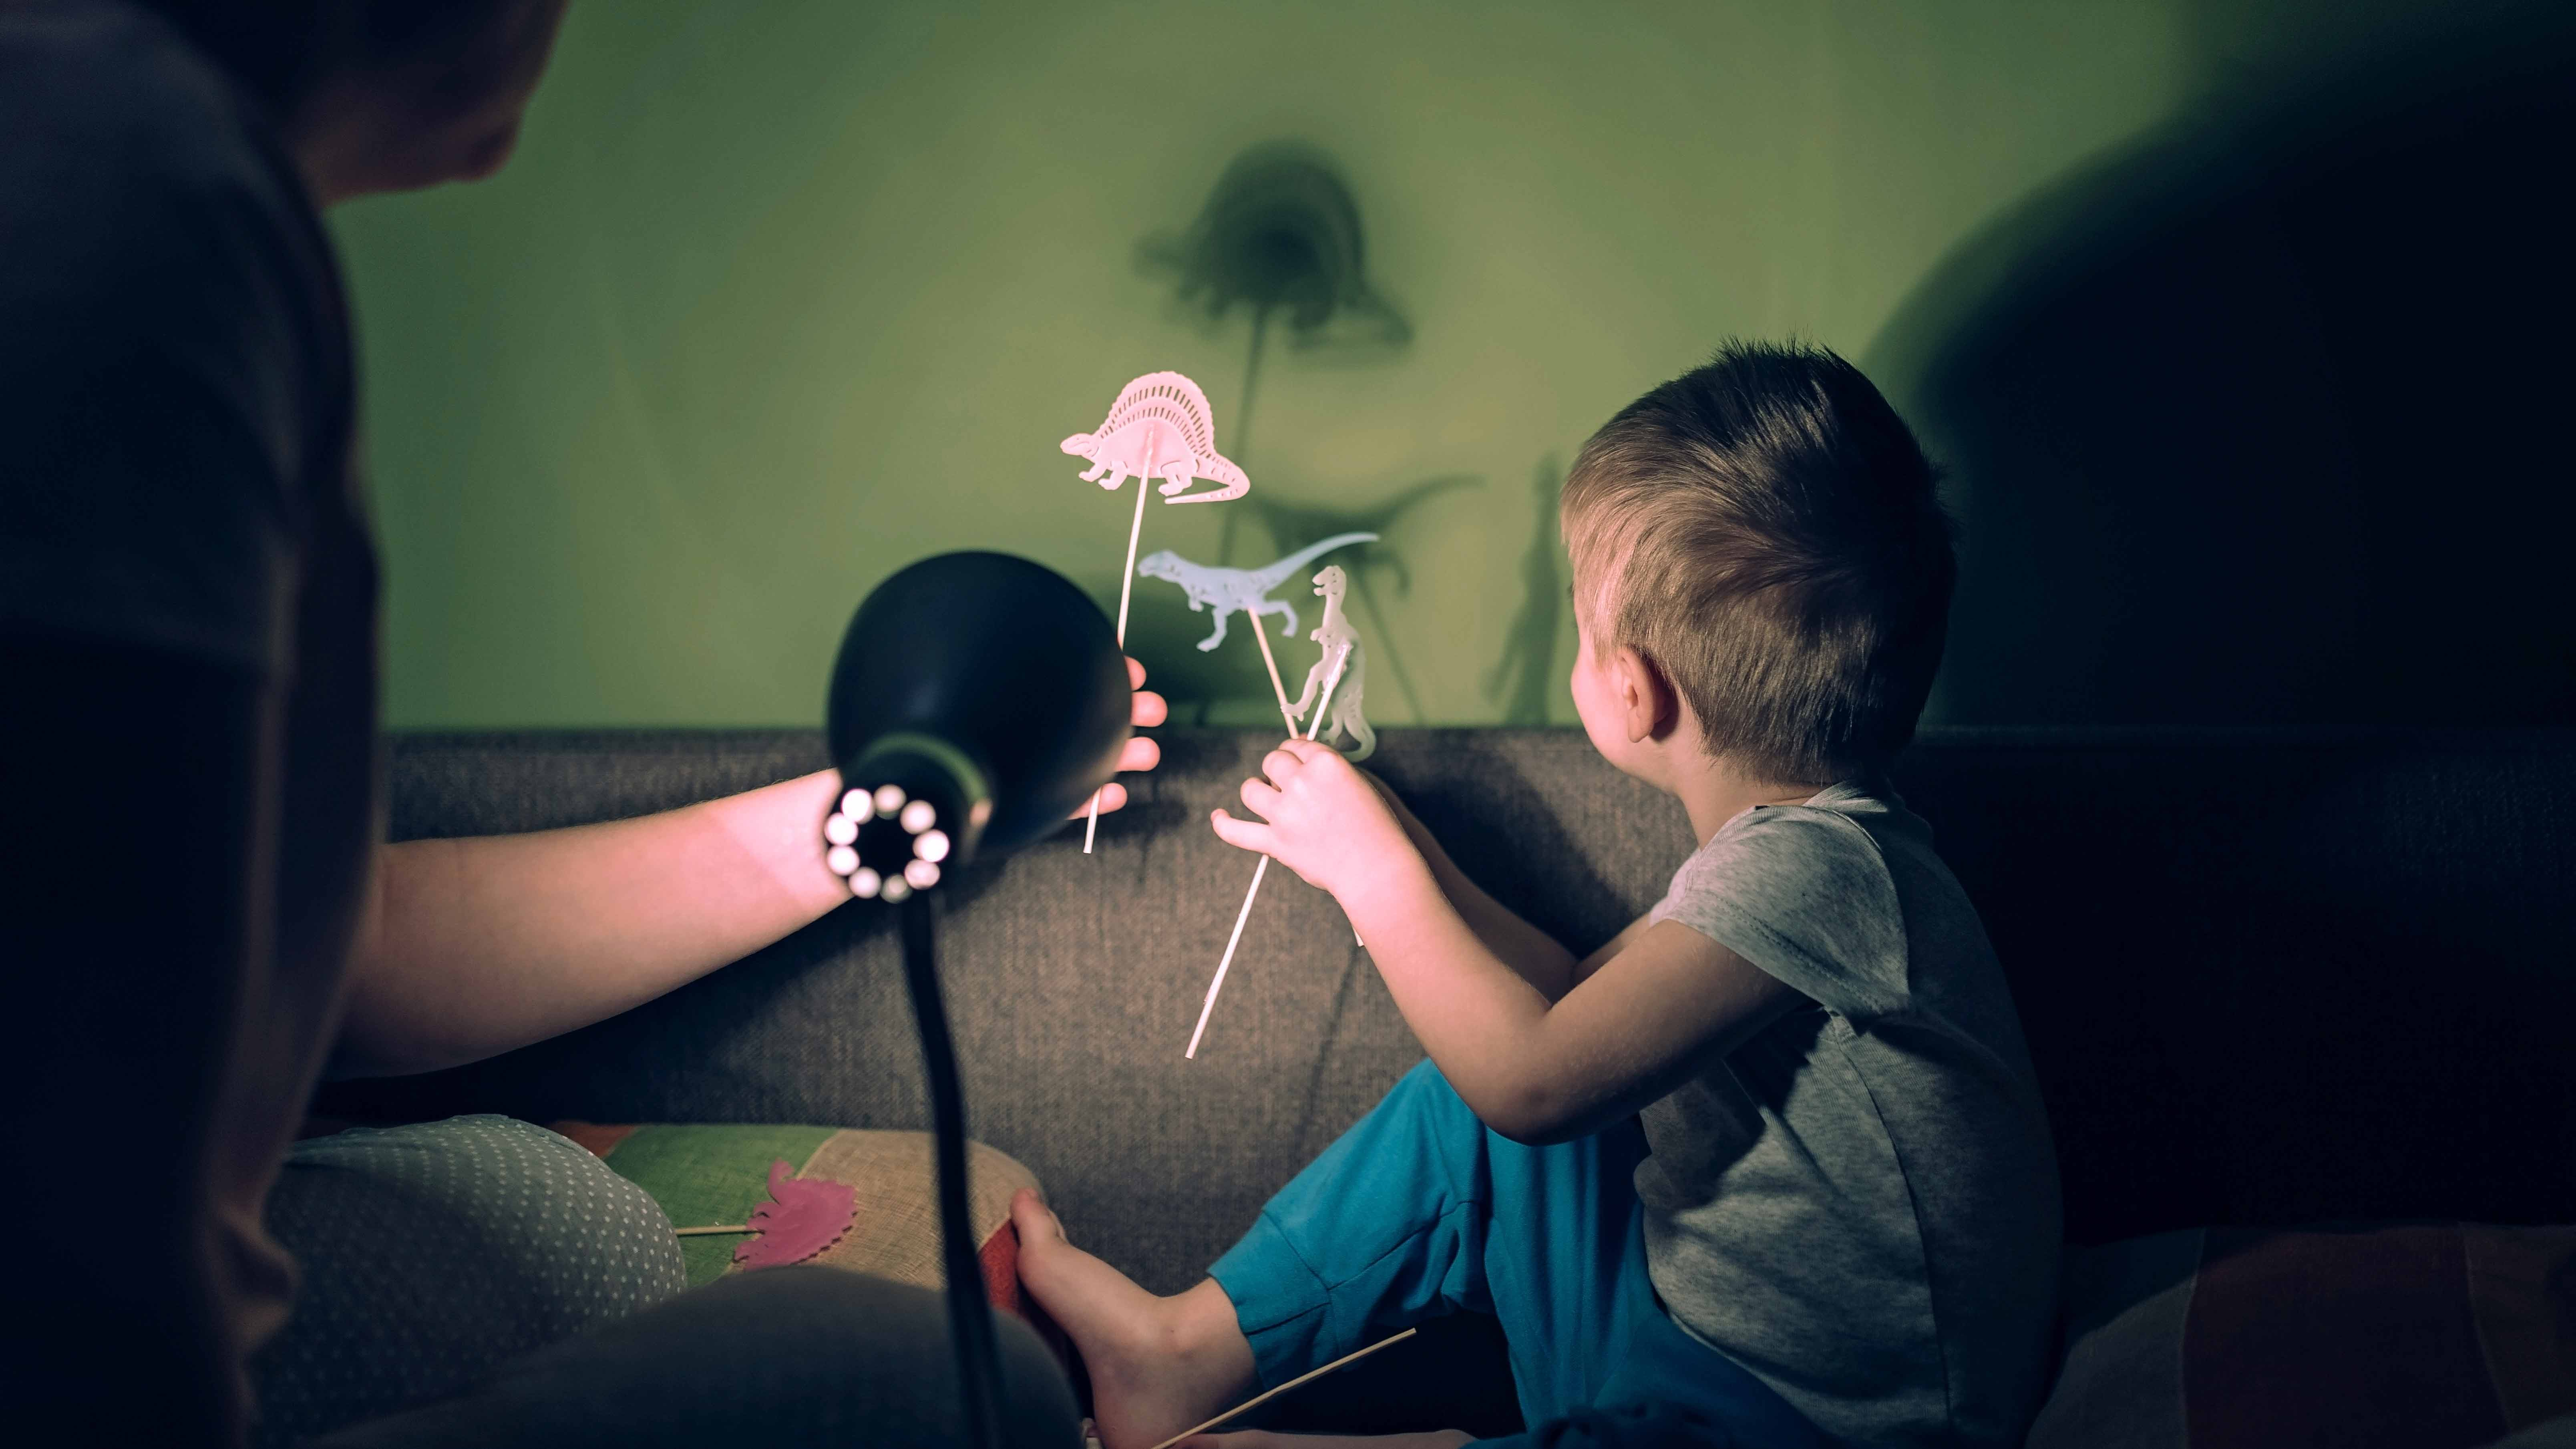 Small child making puppet shadows